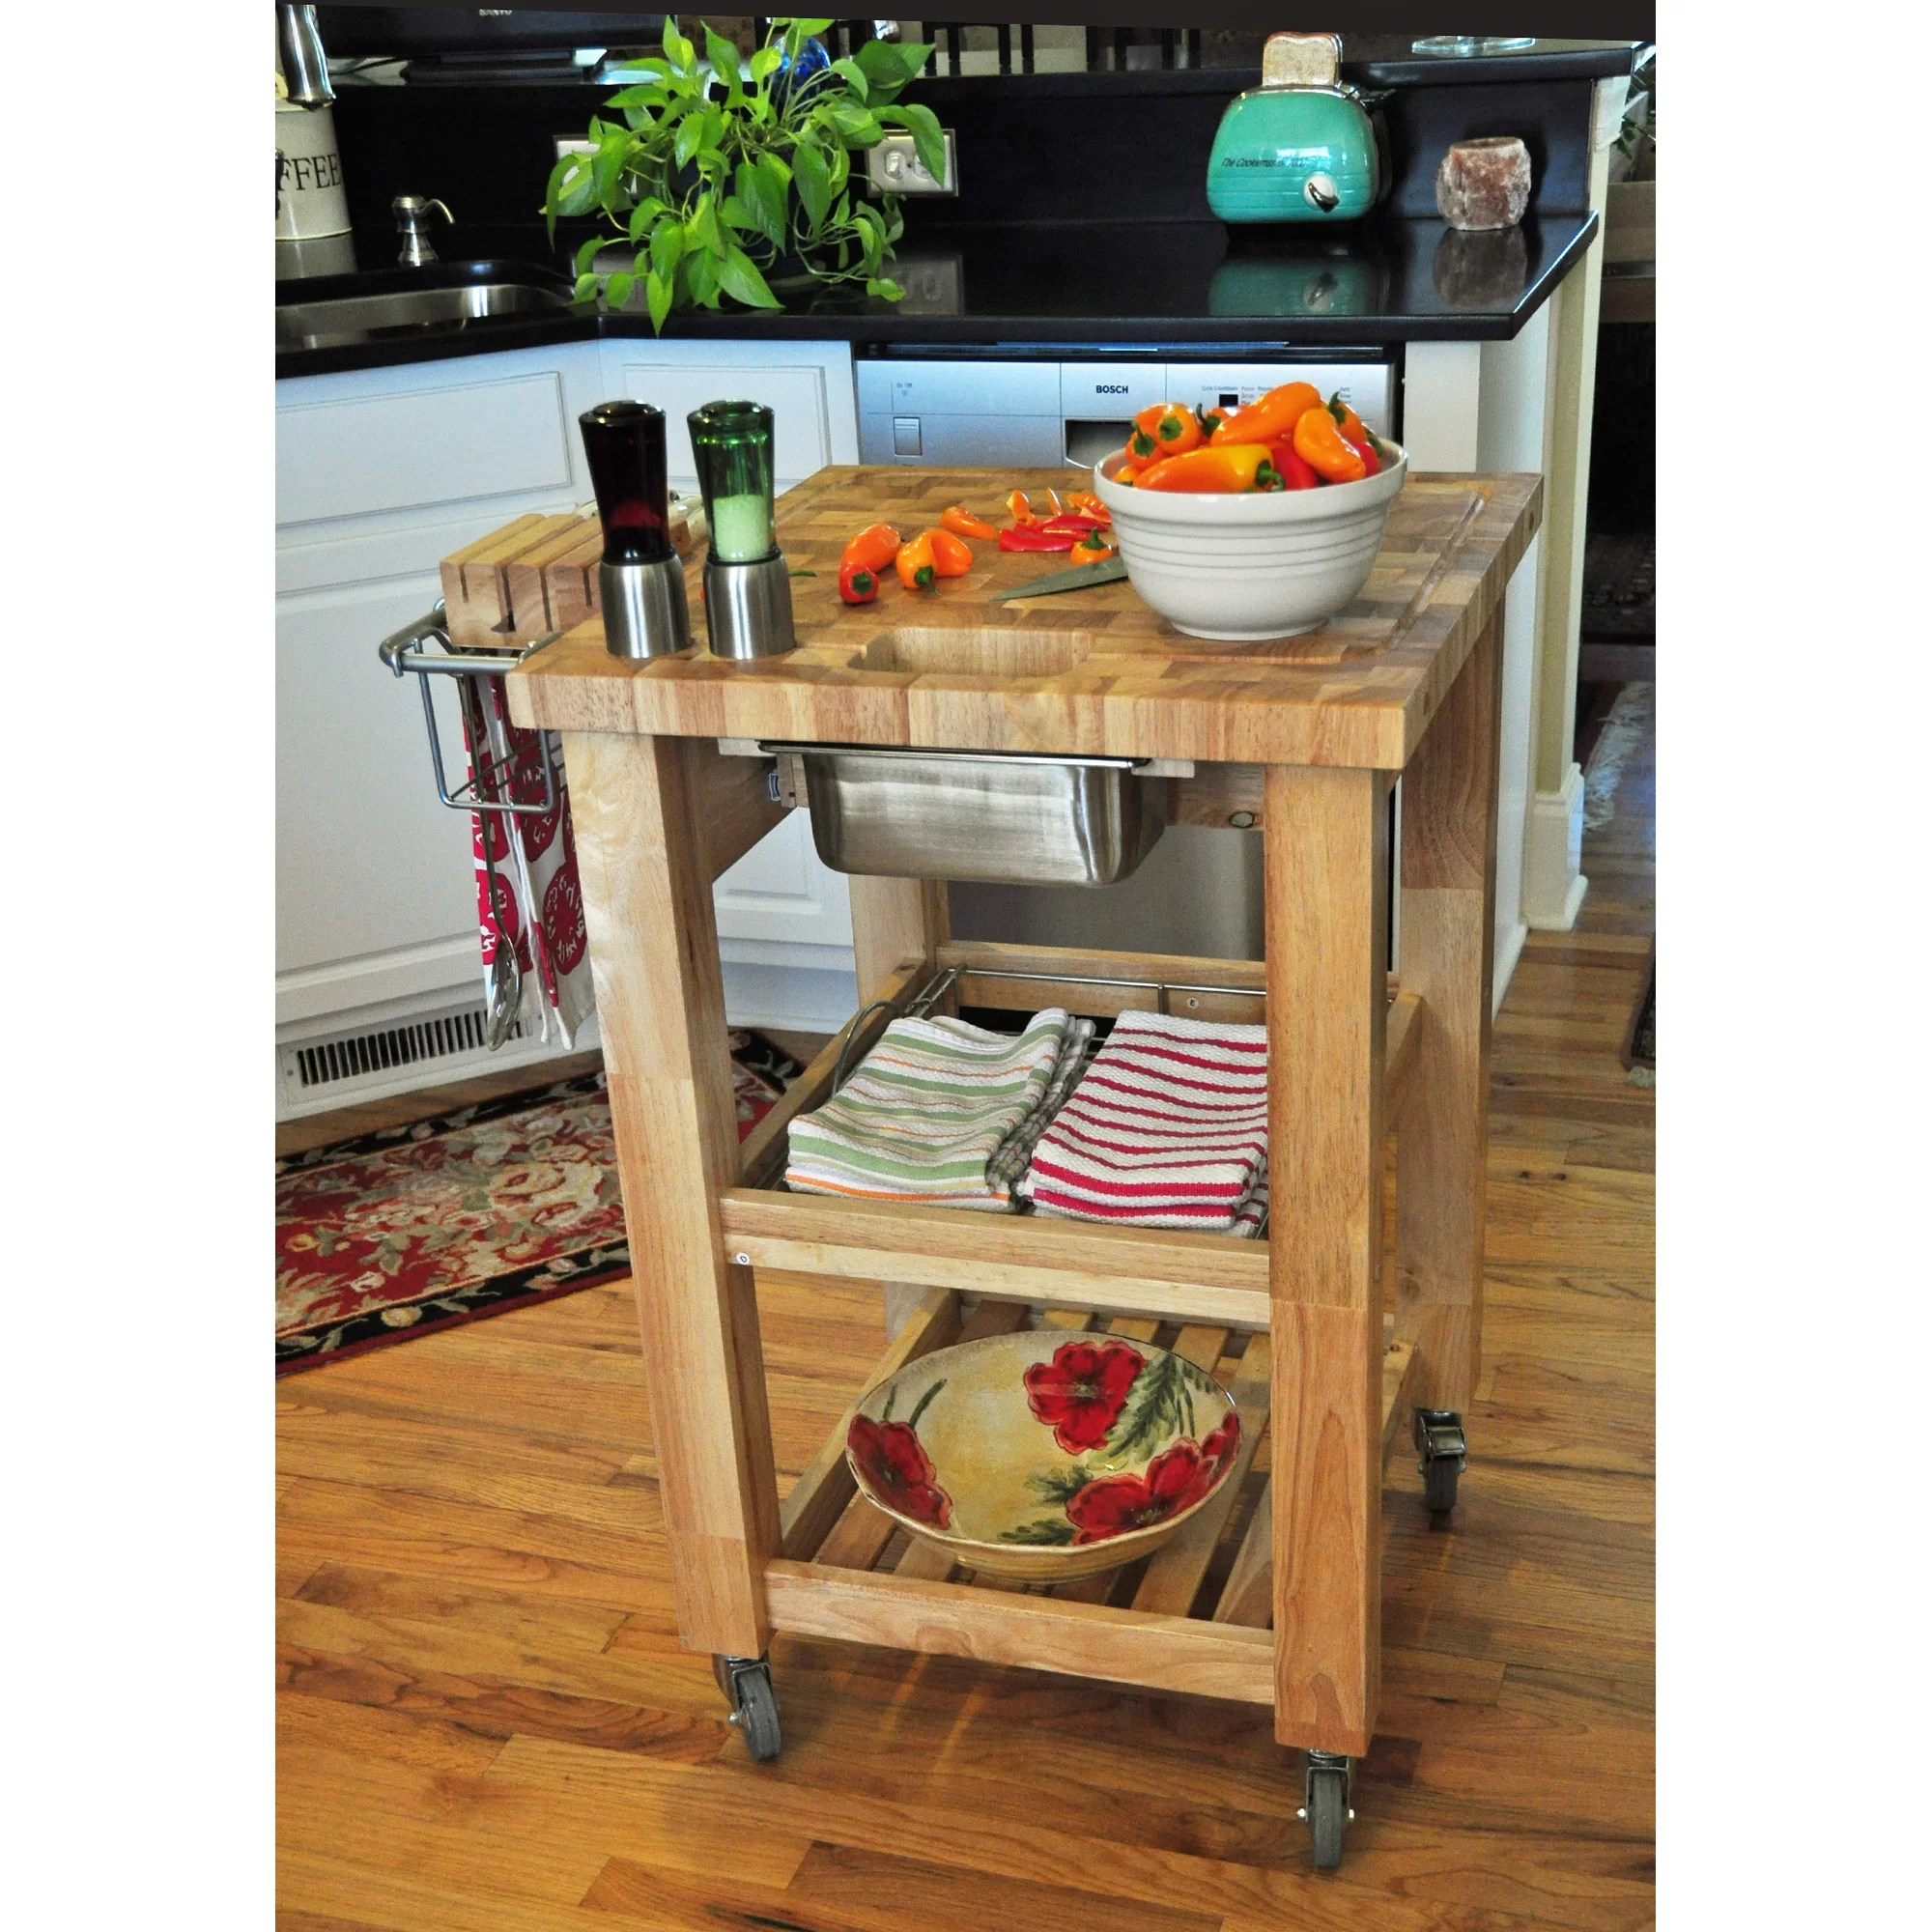 chris and kitchen cart exhaust systems pro chef reviews wayfair